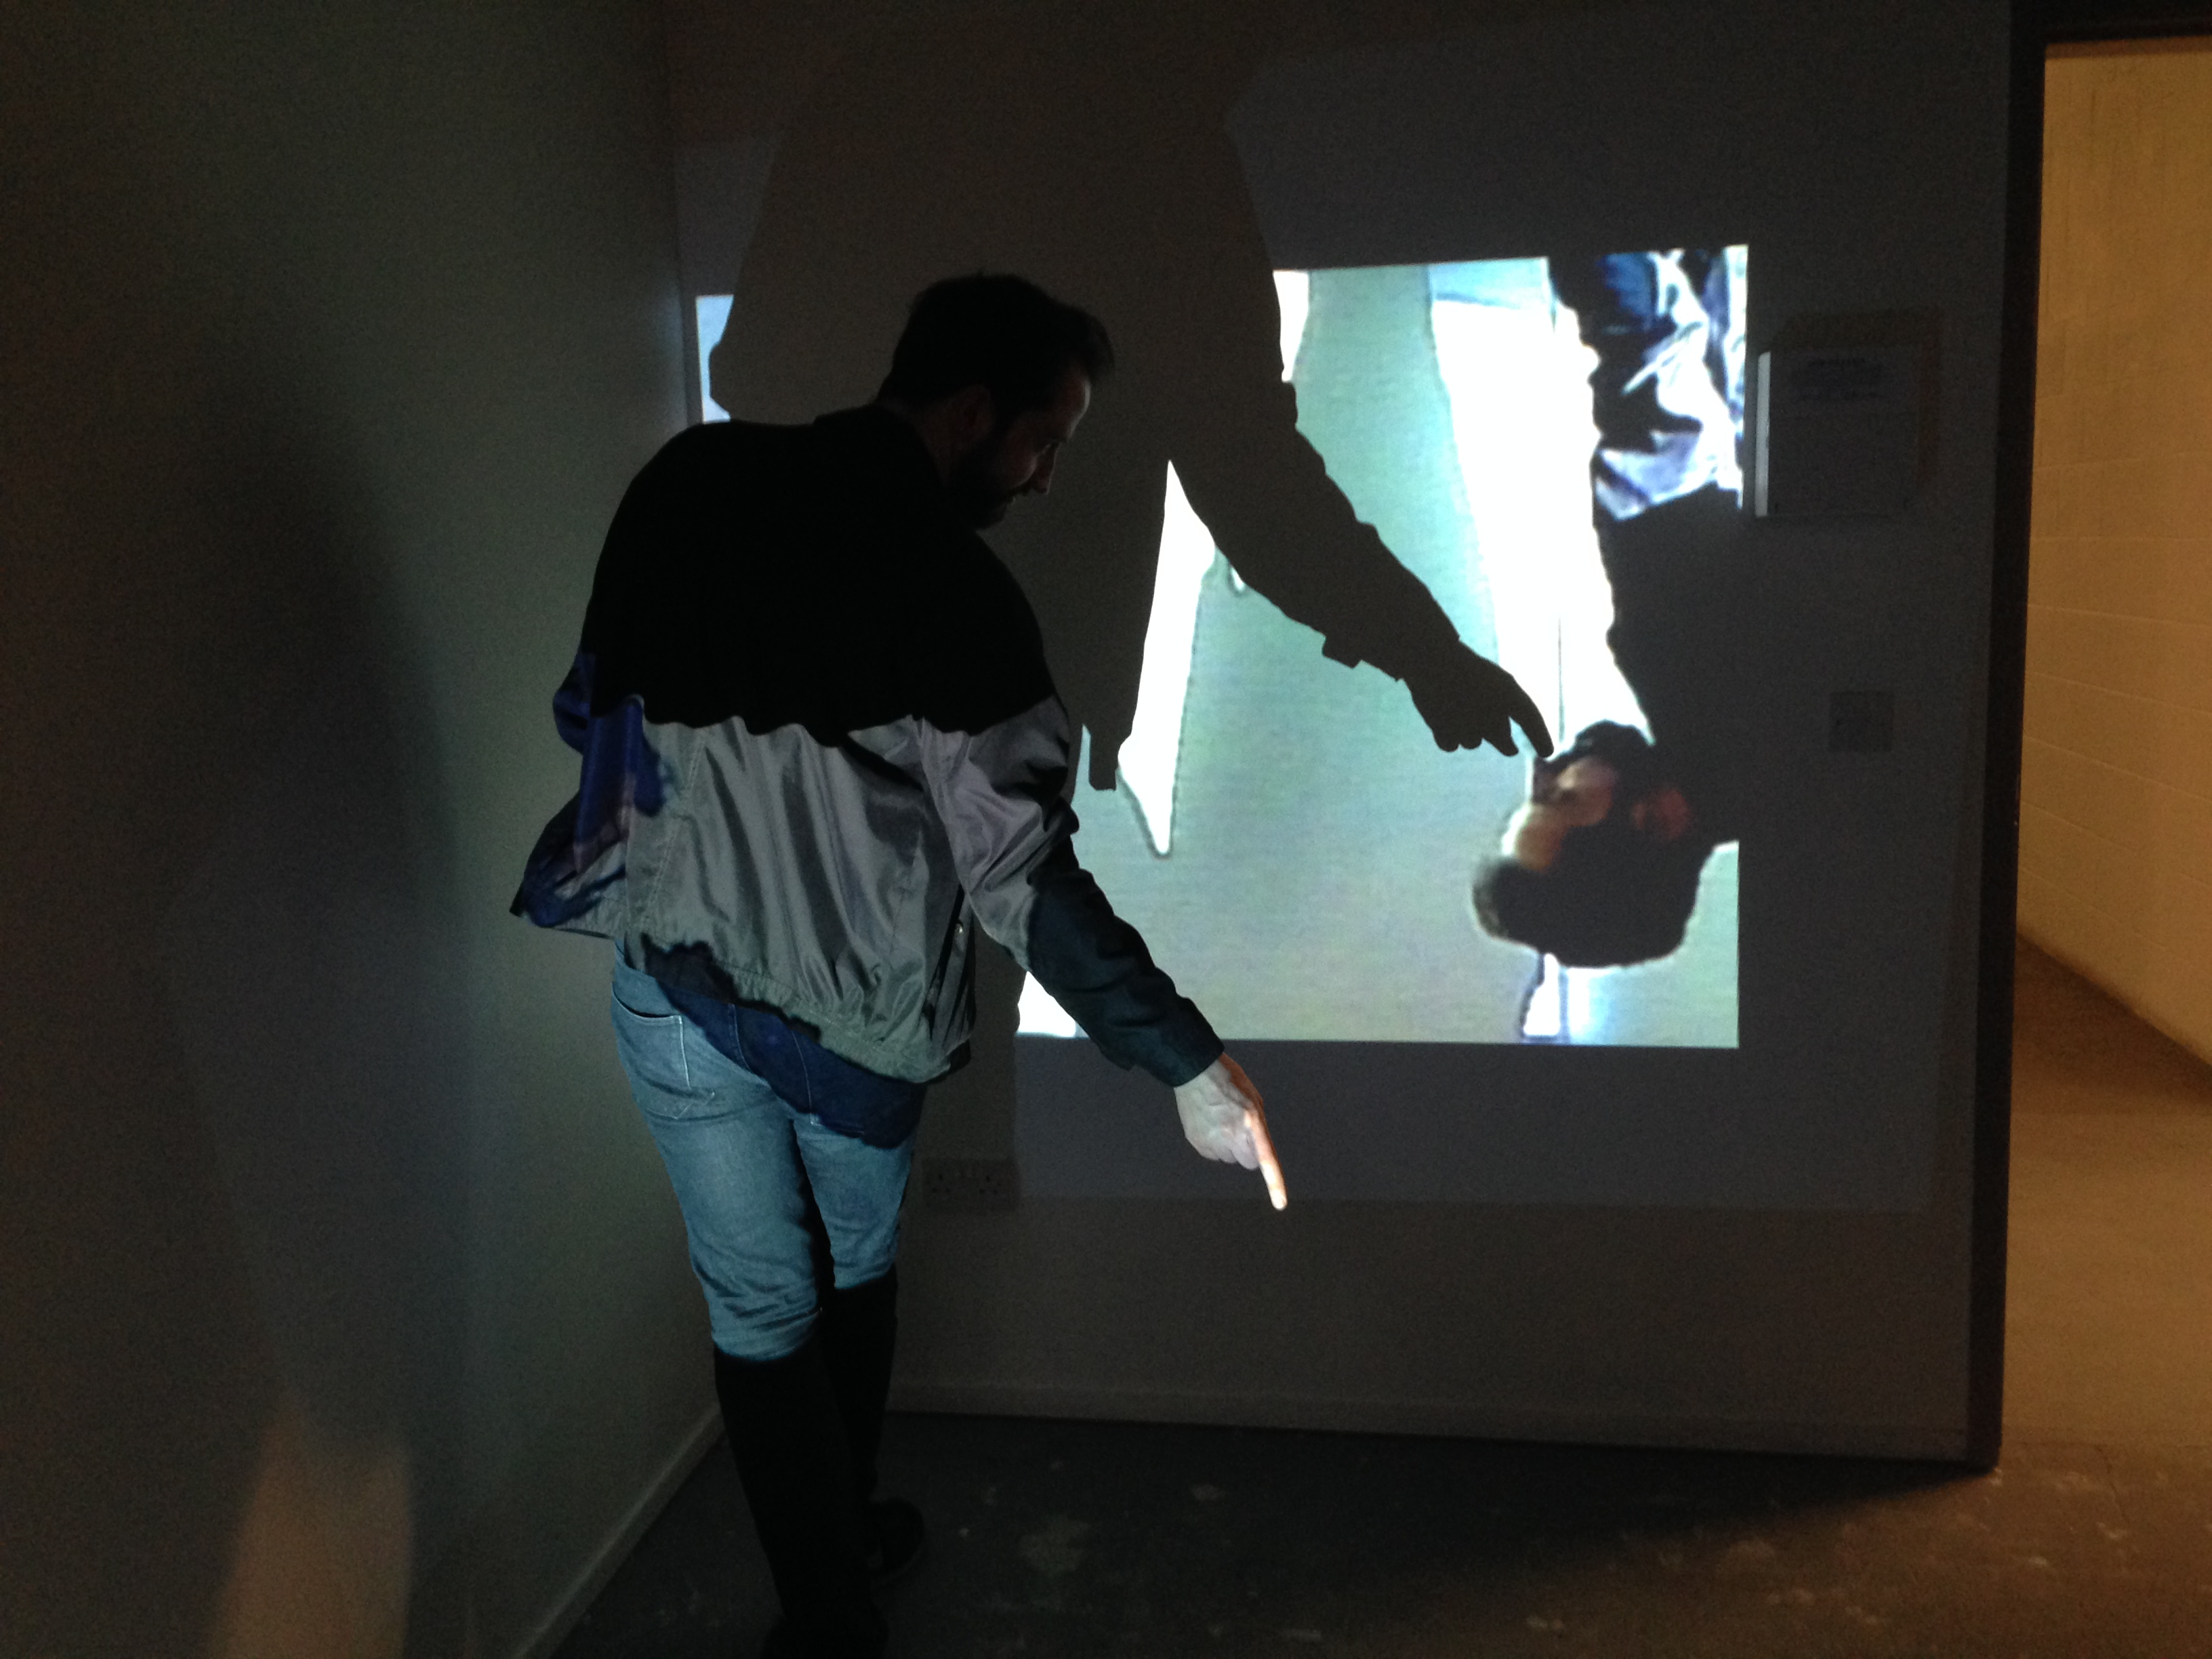 A man stands in front of a projection on a wall. His face is seen in the projection and it is repeated and getting smaller. He is holding his hand out with a pointed finger so that his shadow appears to touch his nose in the projected video.